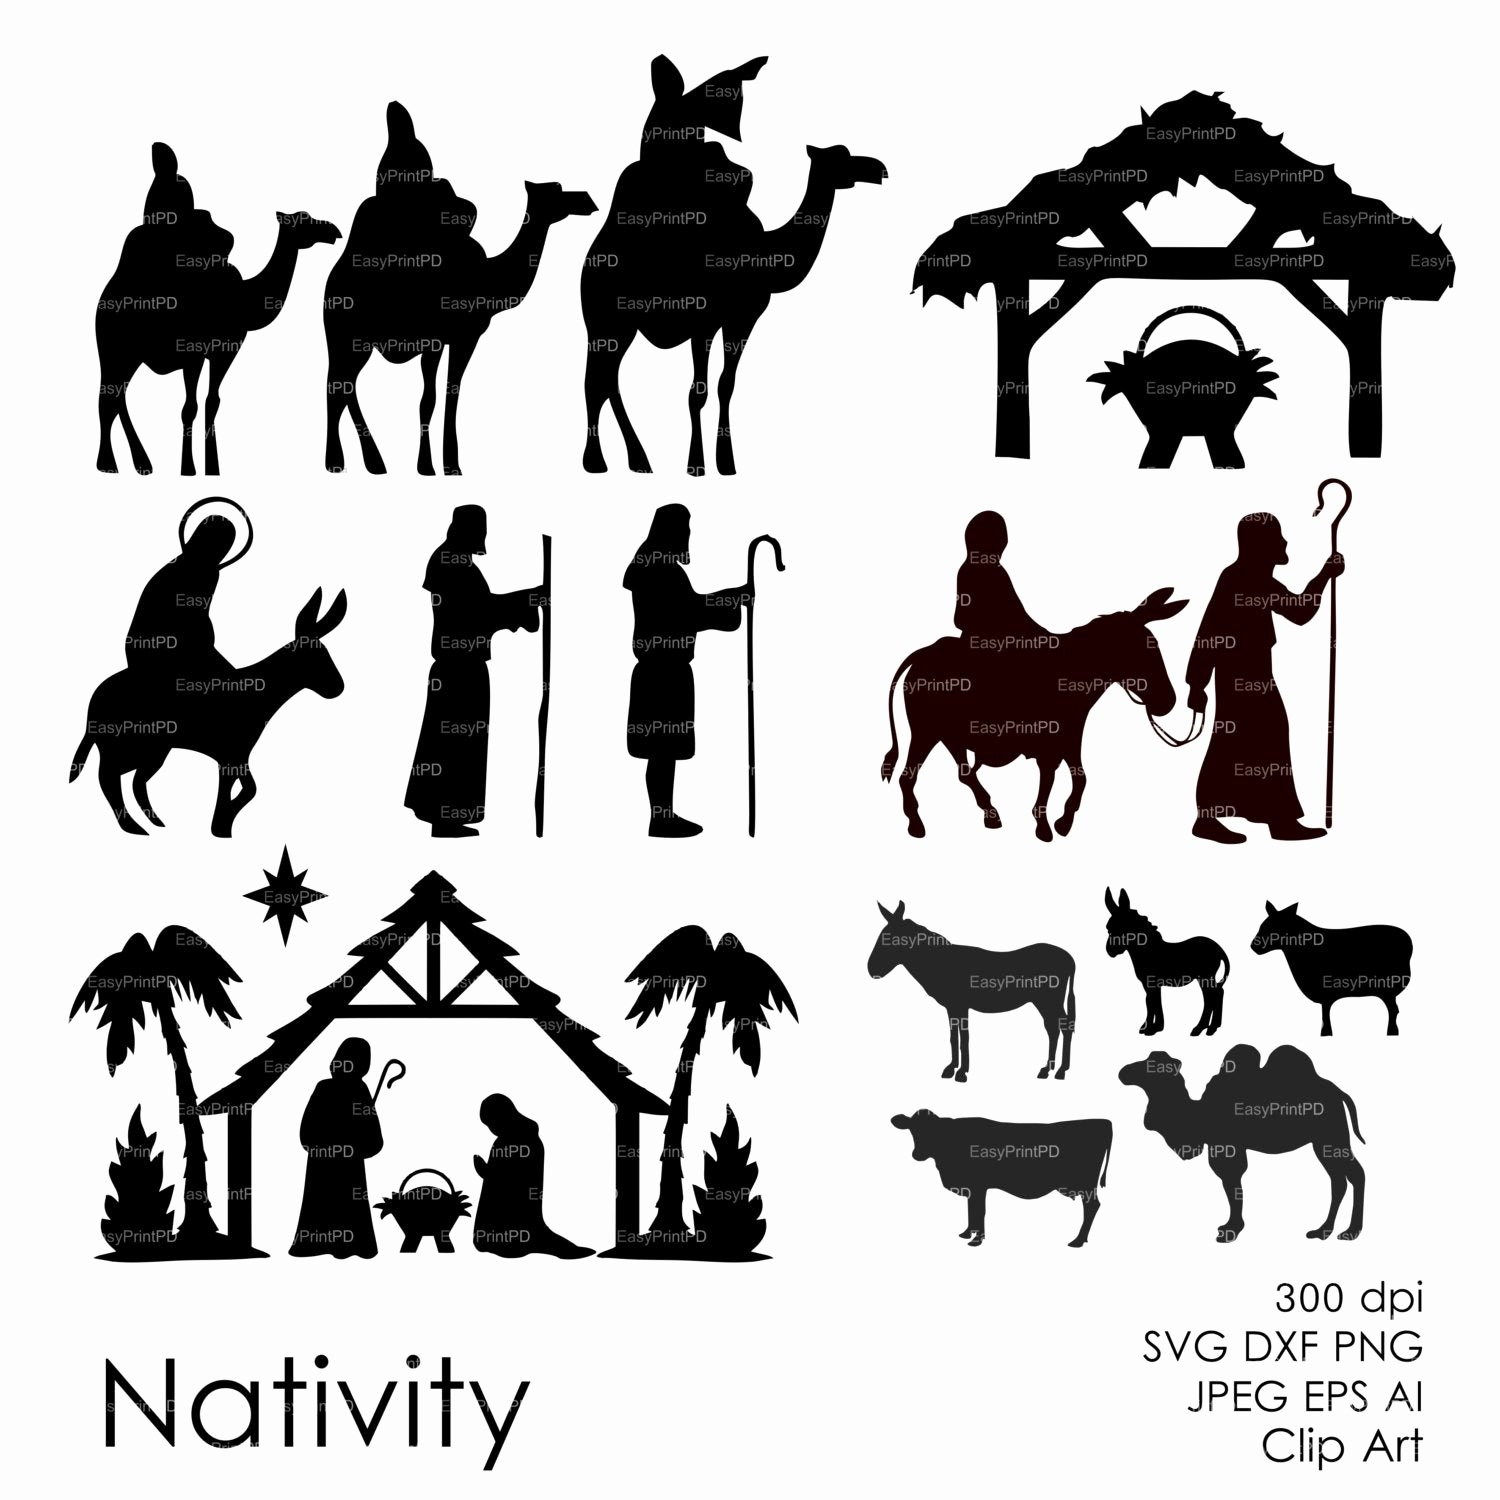 Free Printable Silhouette Of Nativity Scene Inspirational Nativity Christ Silhouette Overlays Vector Digital Clipart